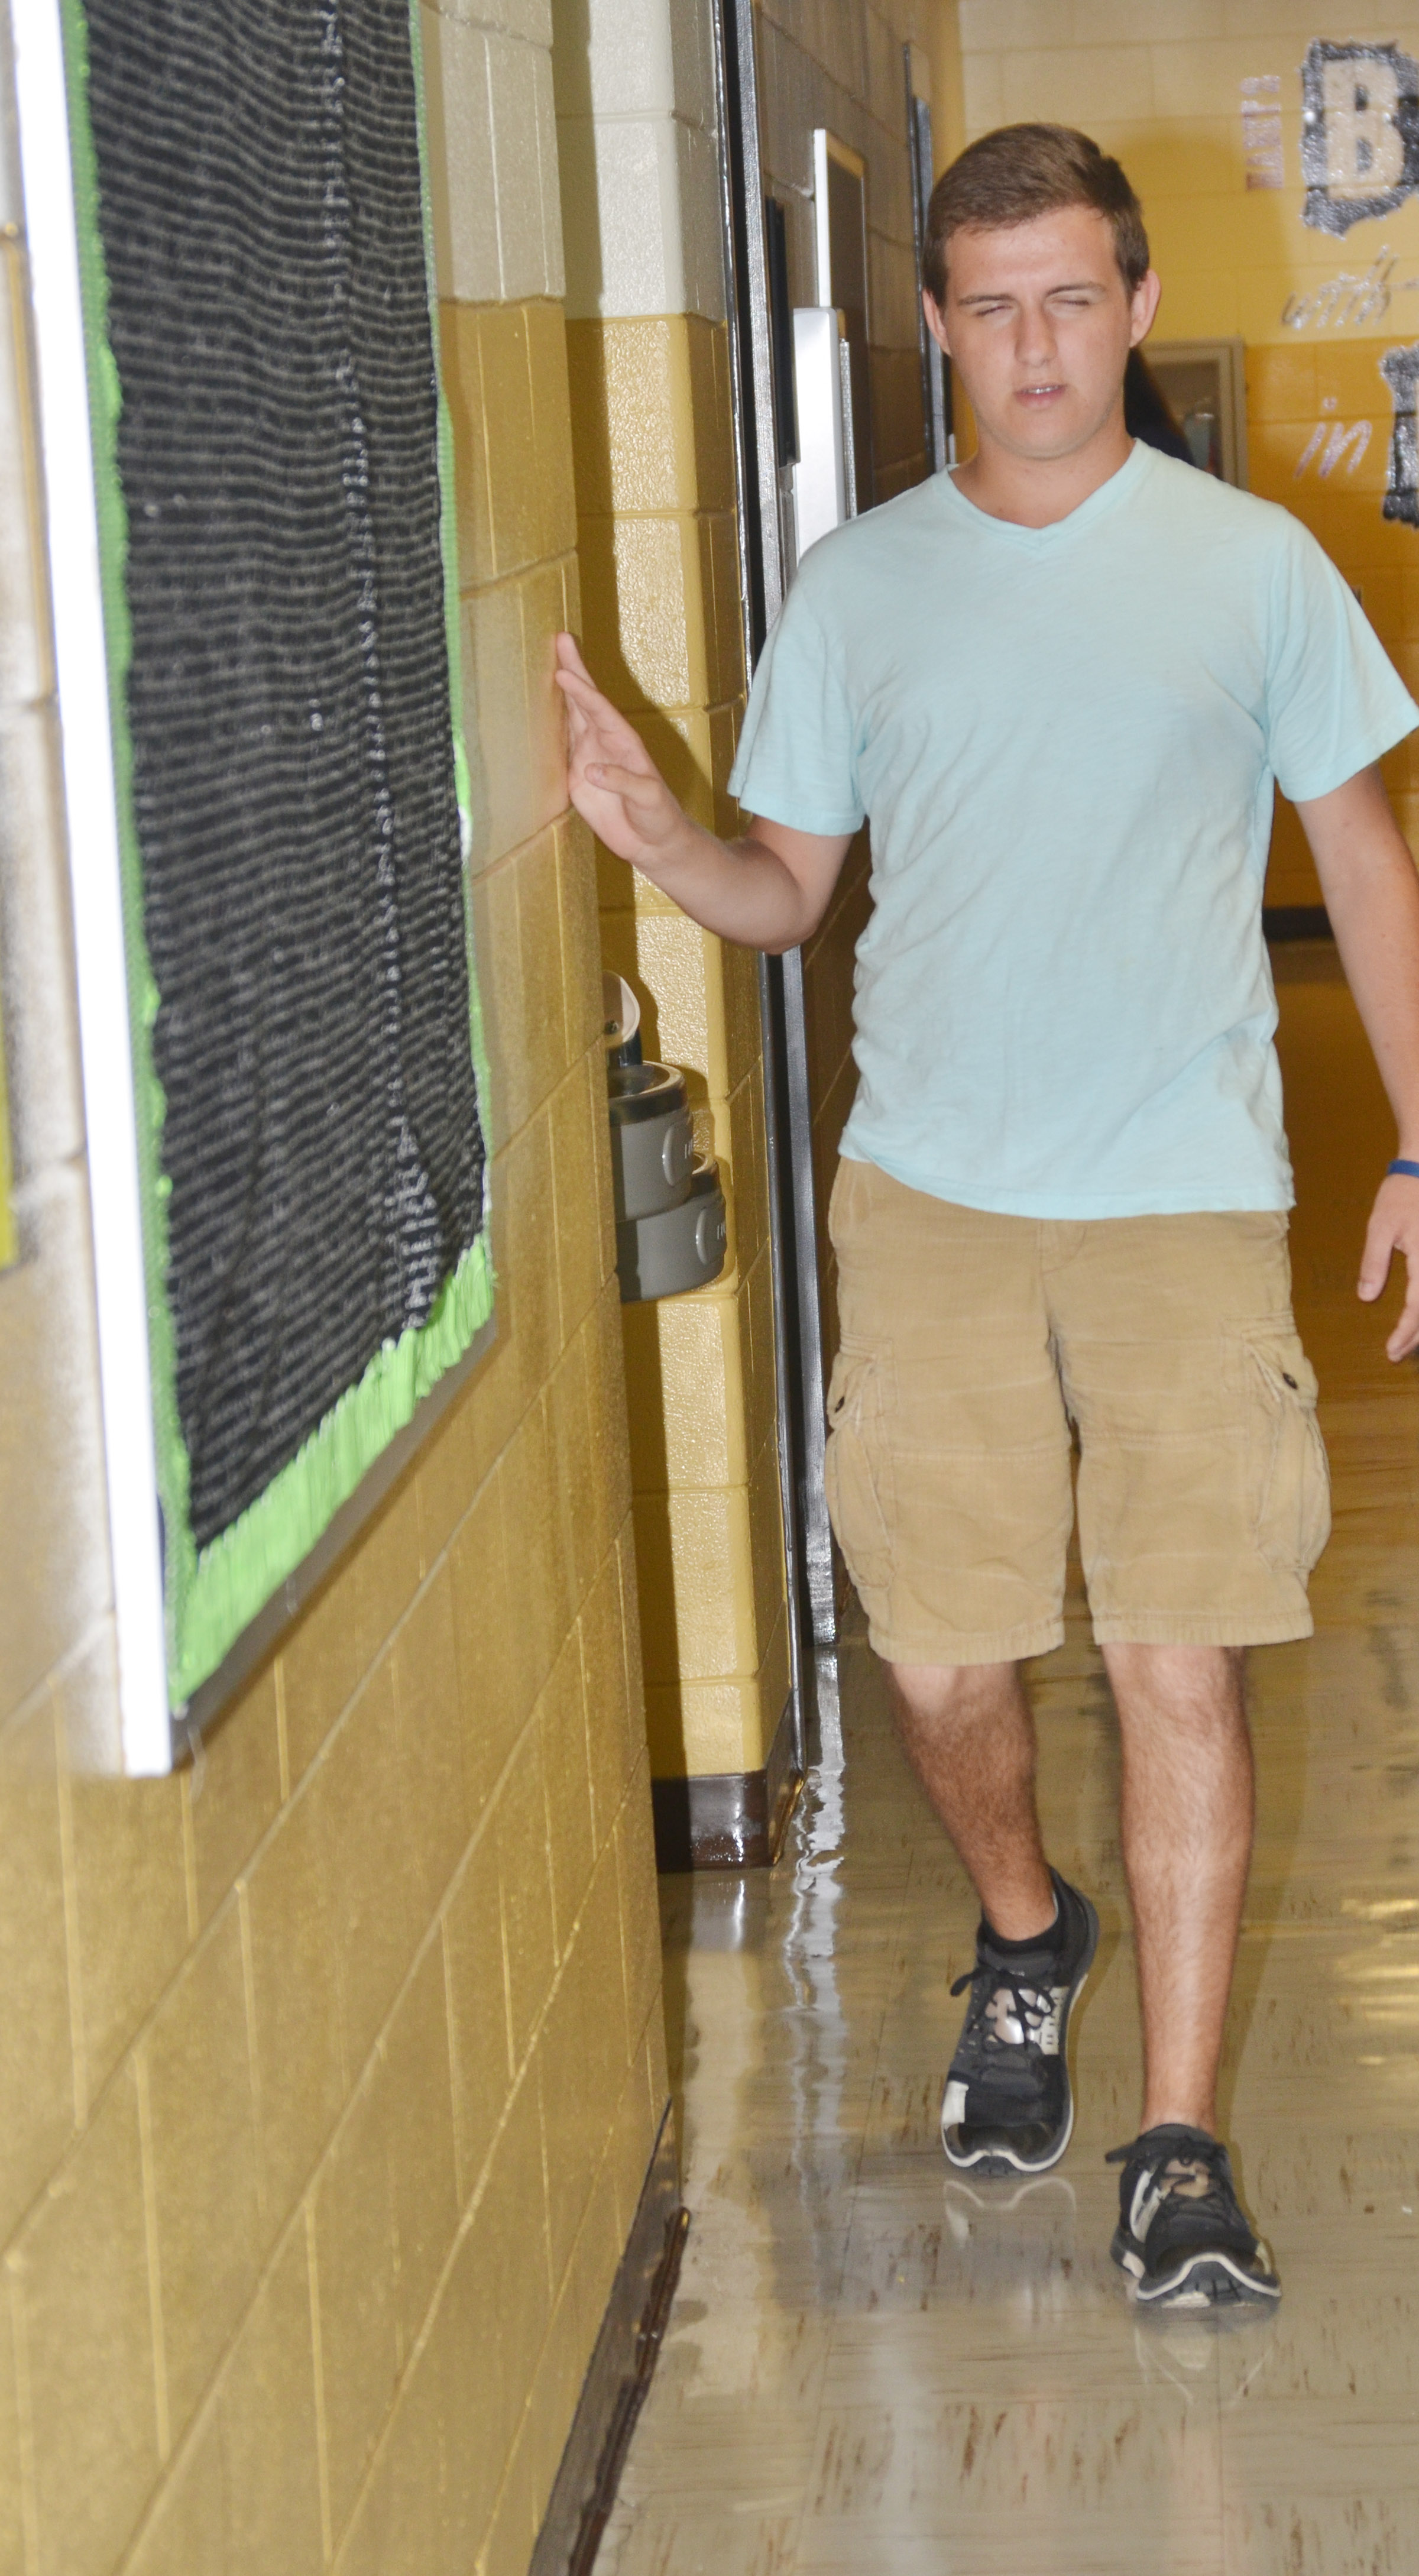 CHS senior Austin Fitzgerald prays as he walks down the hallway at his school.